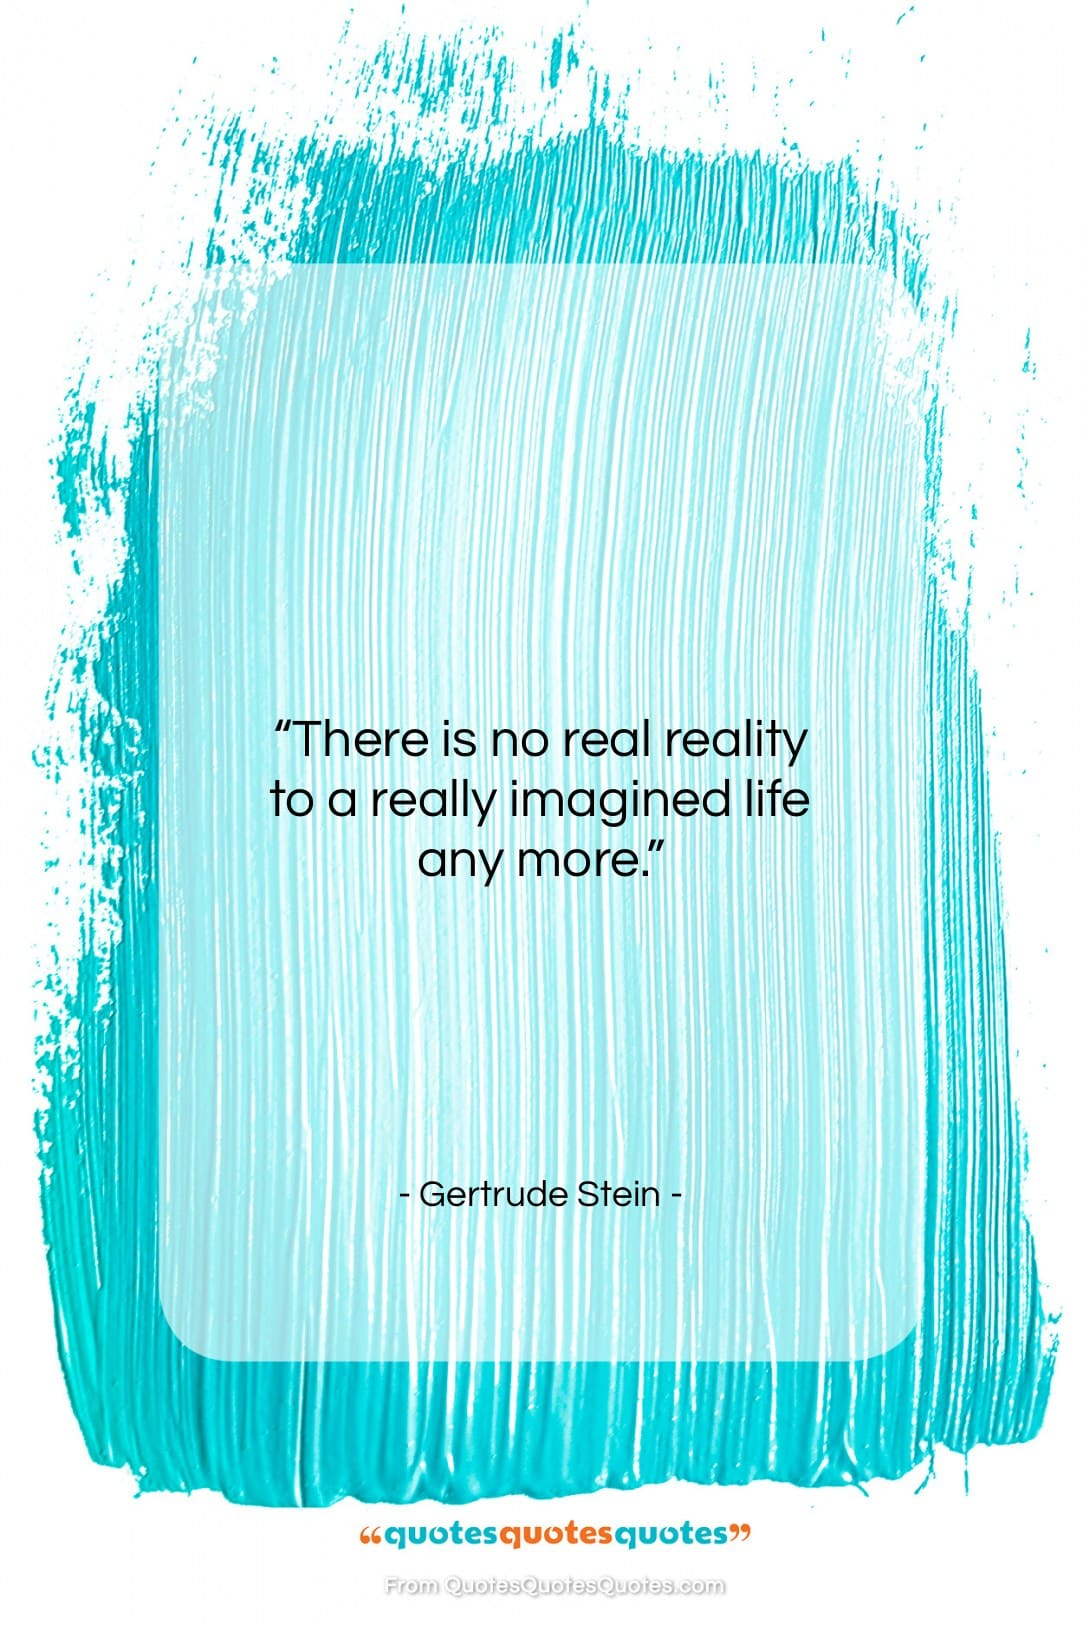 """Gertrude Stein quote: """"There is no real reality to a…""""- at QuotesQuotesQuotes.com"""